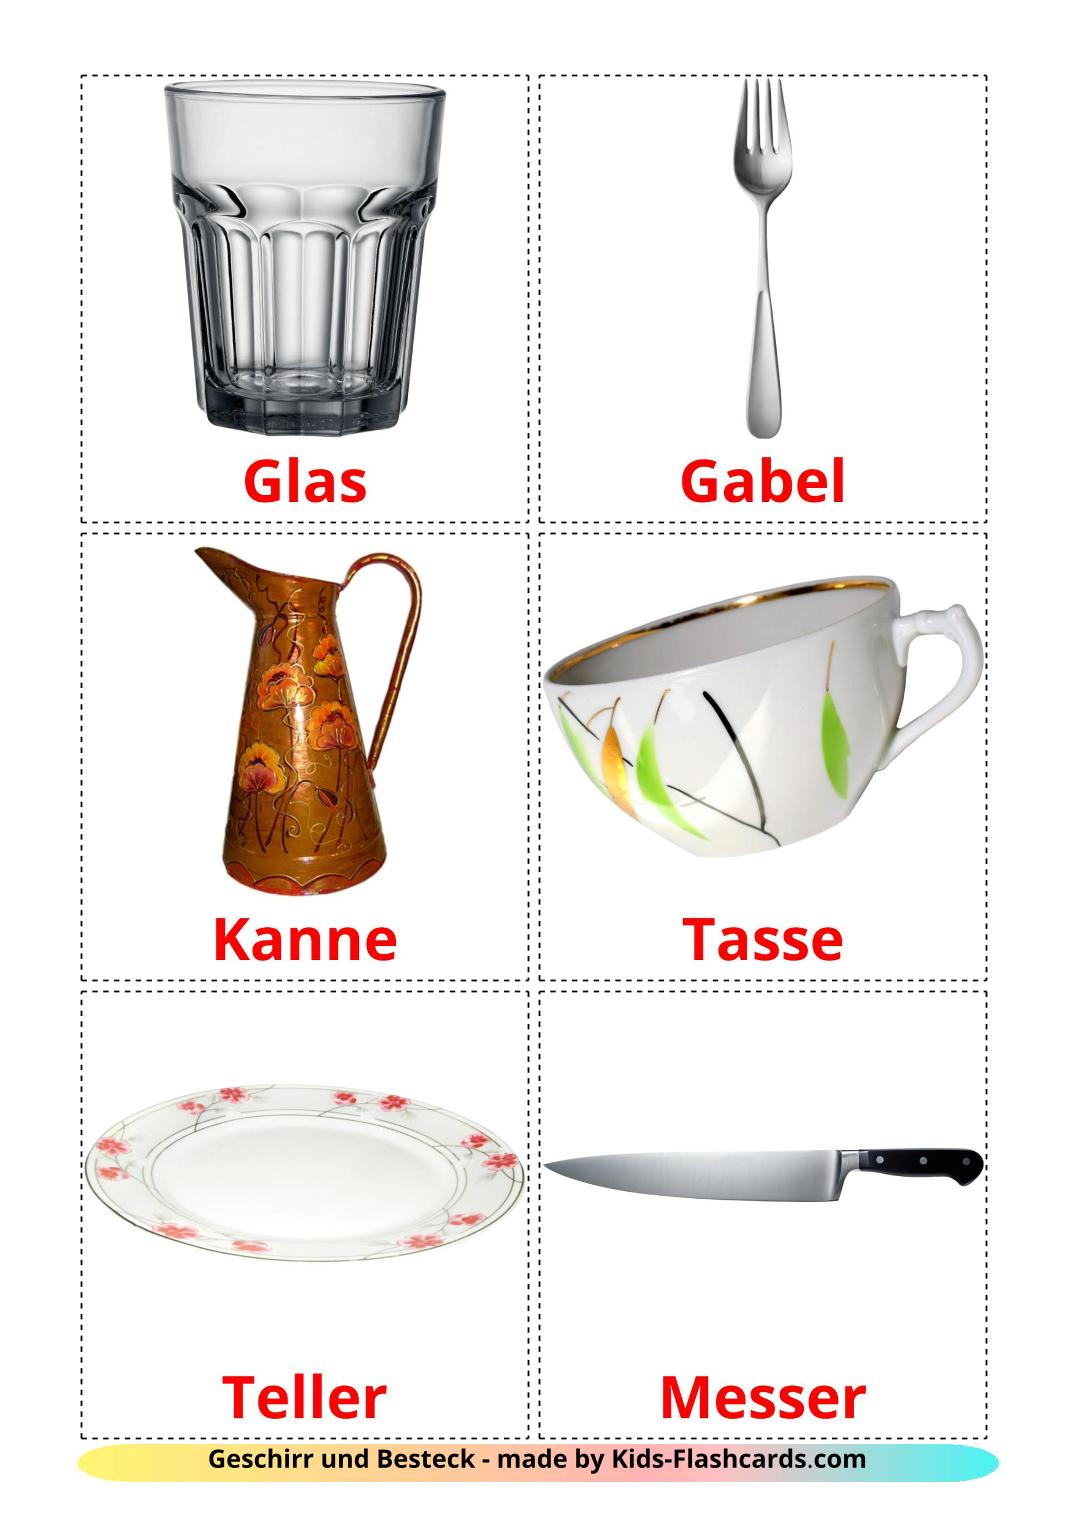 Crockery and cutlery picture cards for Kindergarden in german